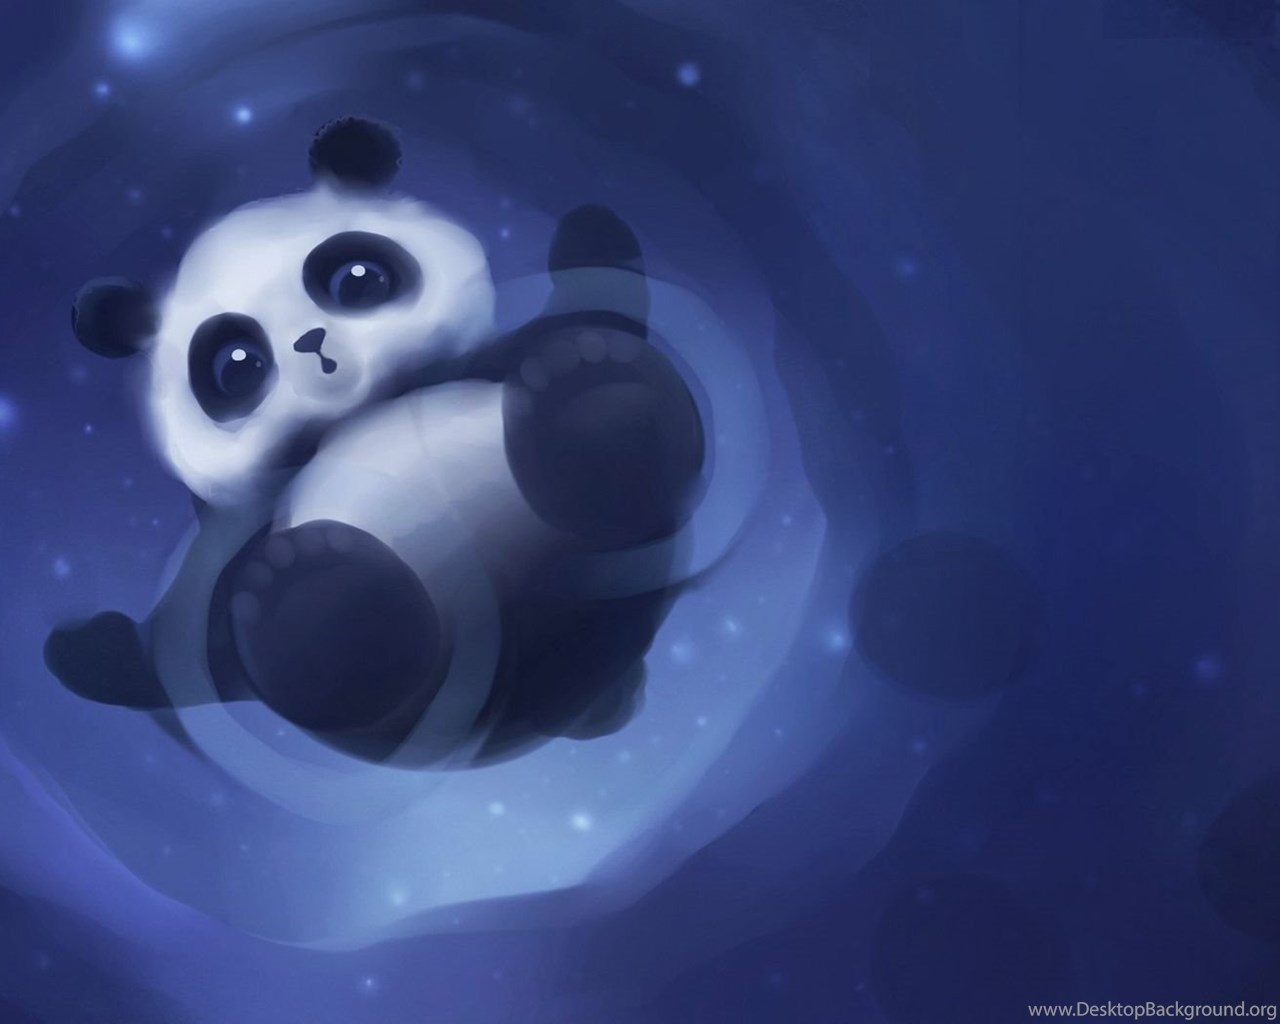 Cute Baby Panda Playing In The Puddle Wallpapers Digital Art Desktop Background